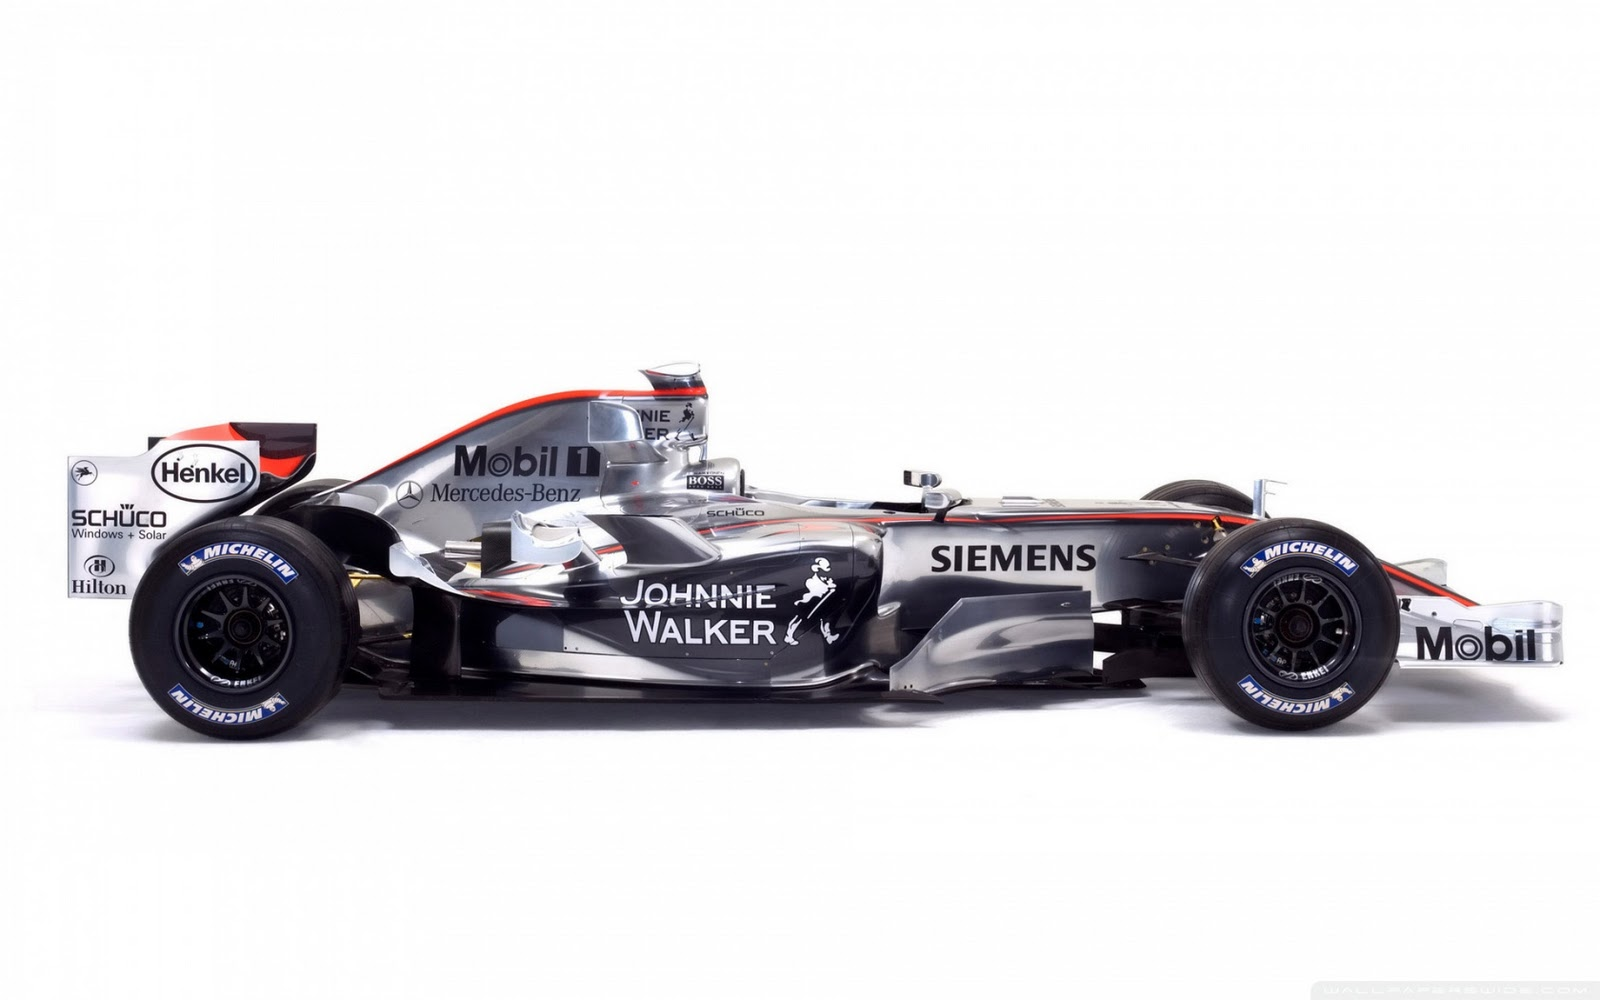 Formule 1 Wallpapers Hd Wallpapers